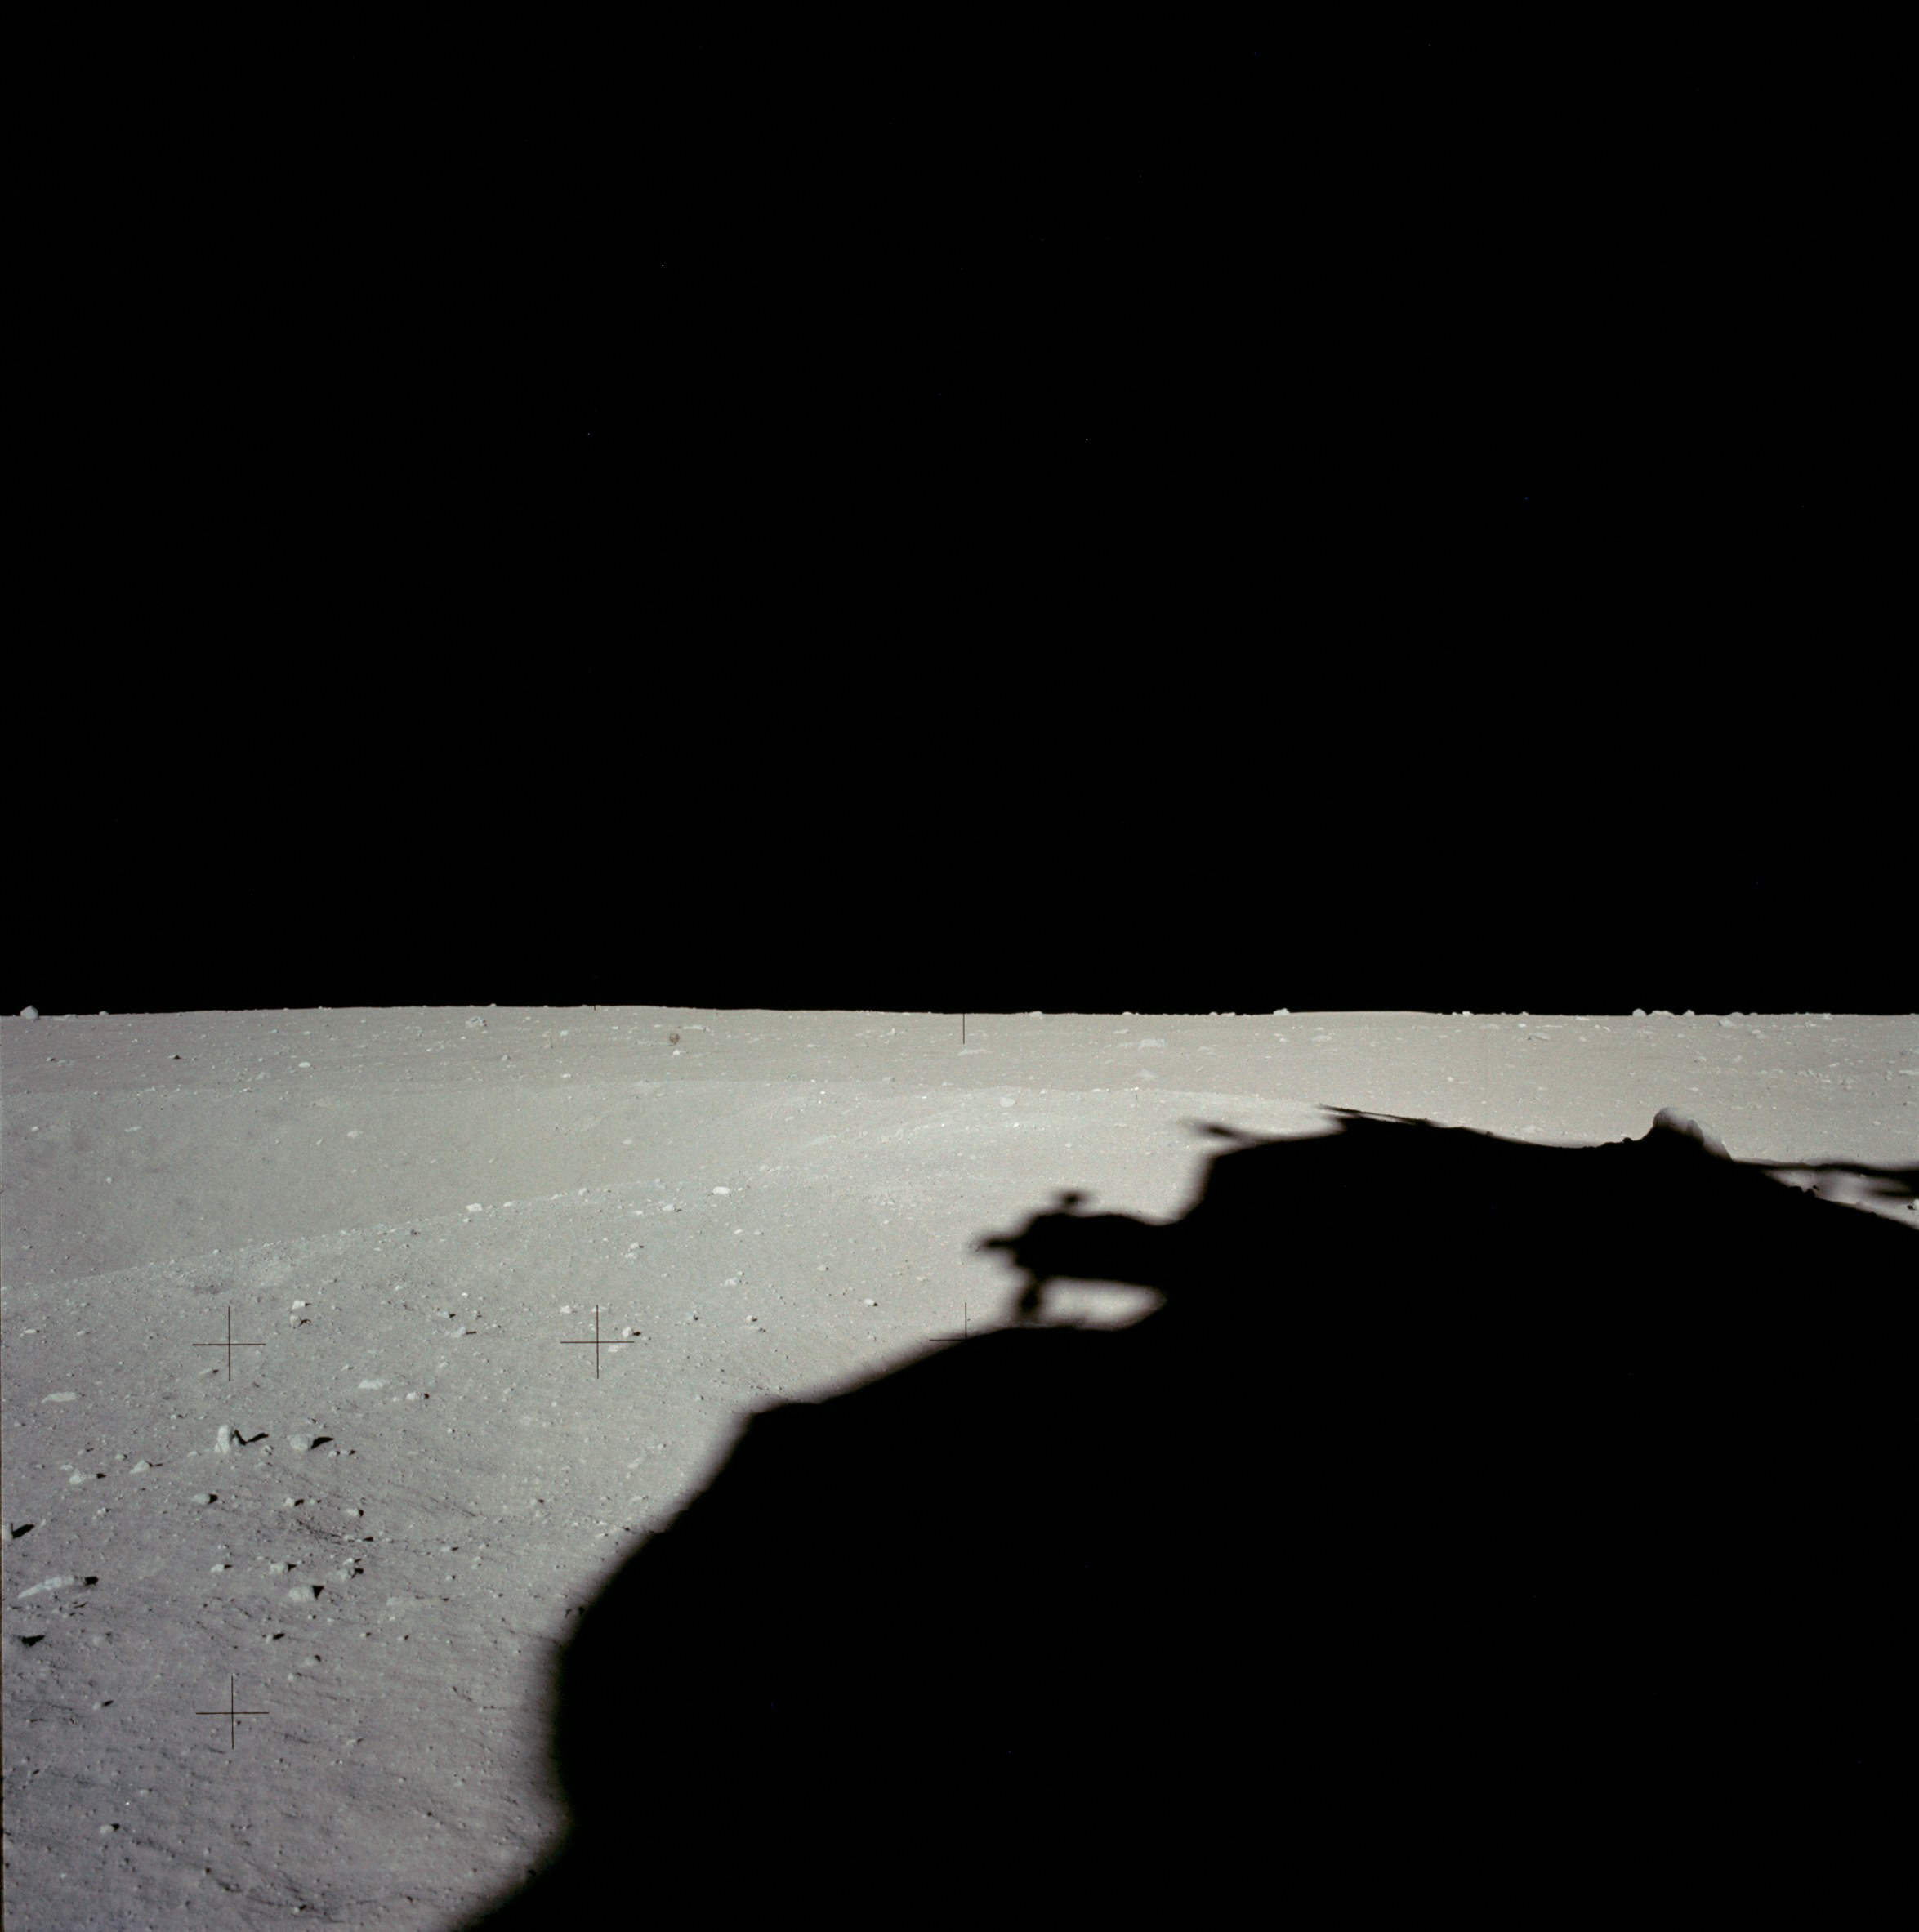 Apollo 11 Anomaly on the Lunar Surface AS11-40-5854HR